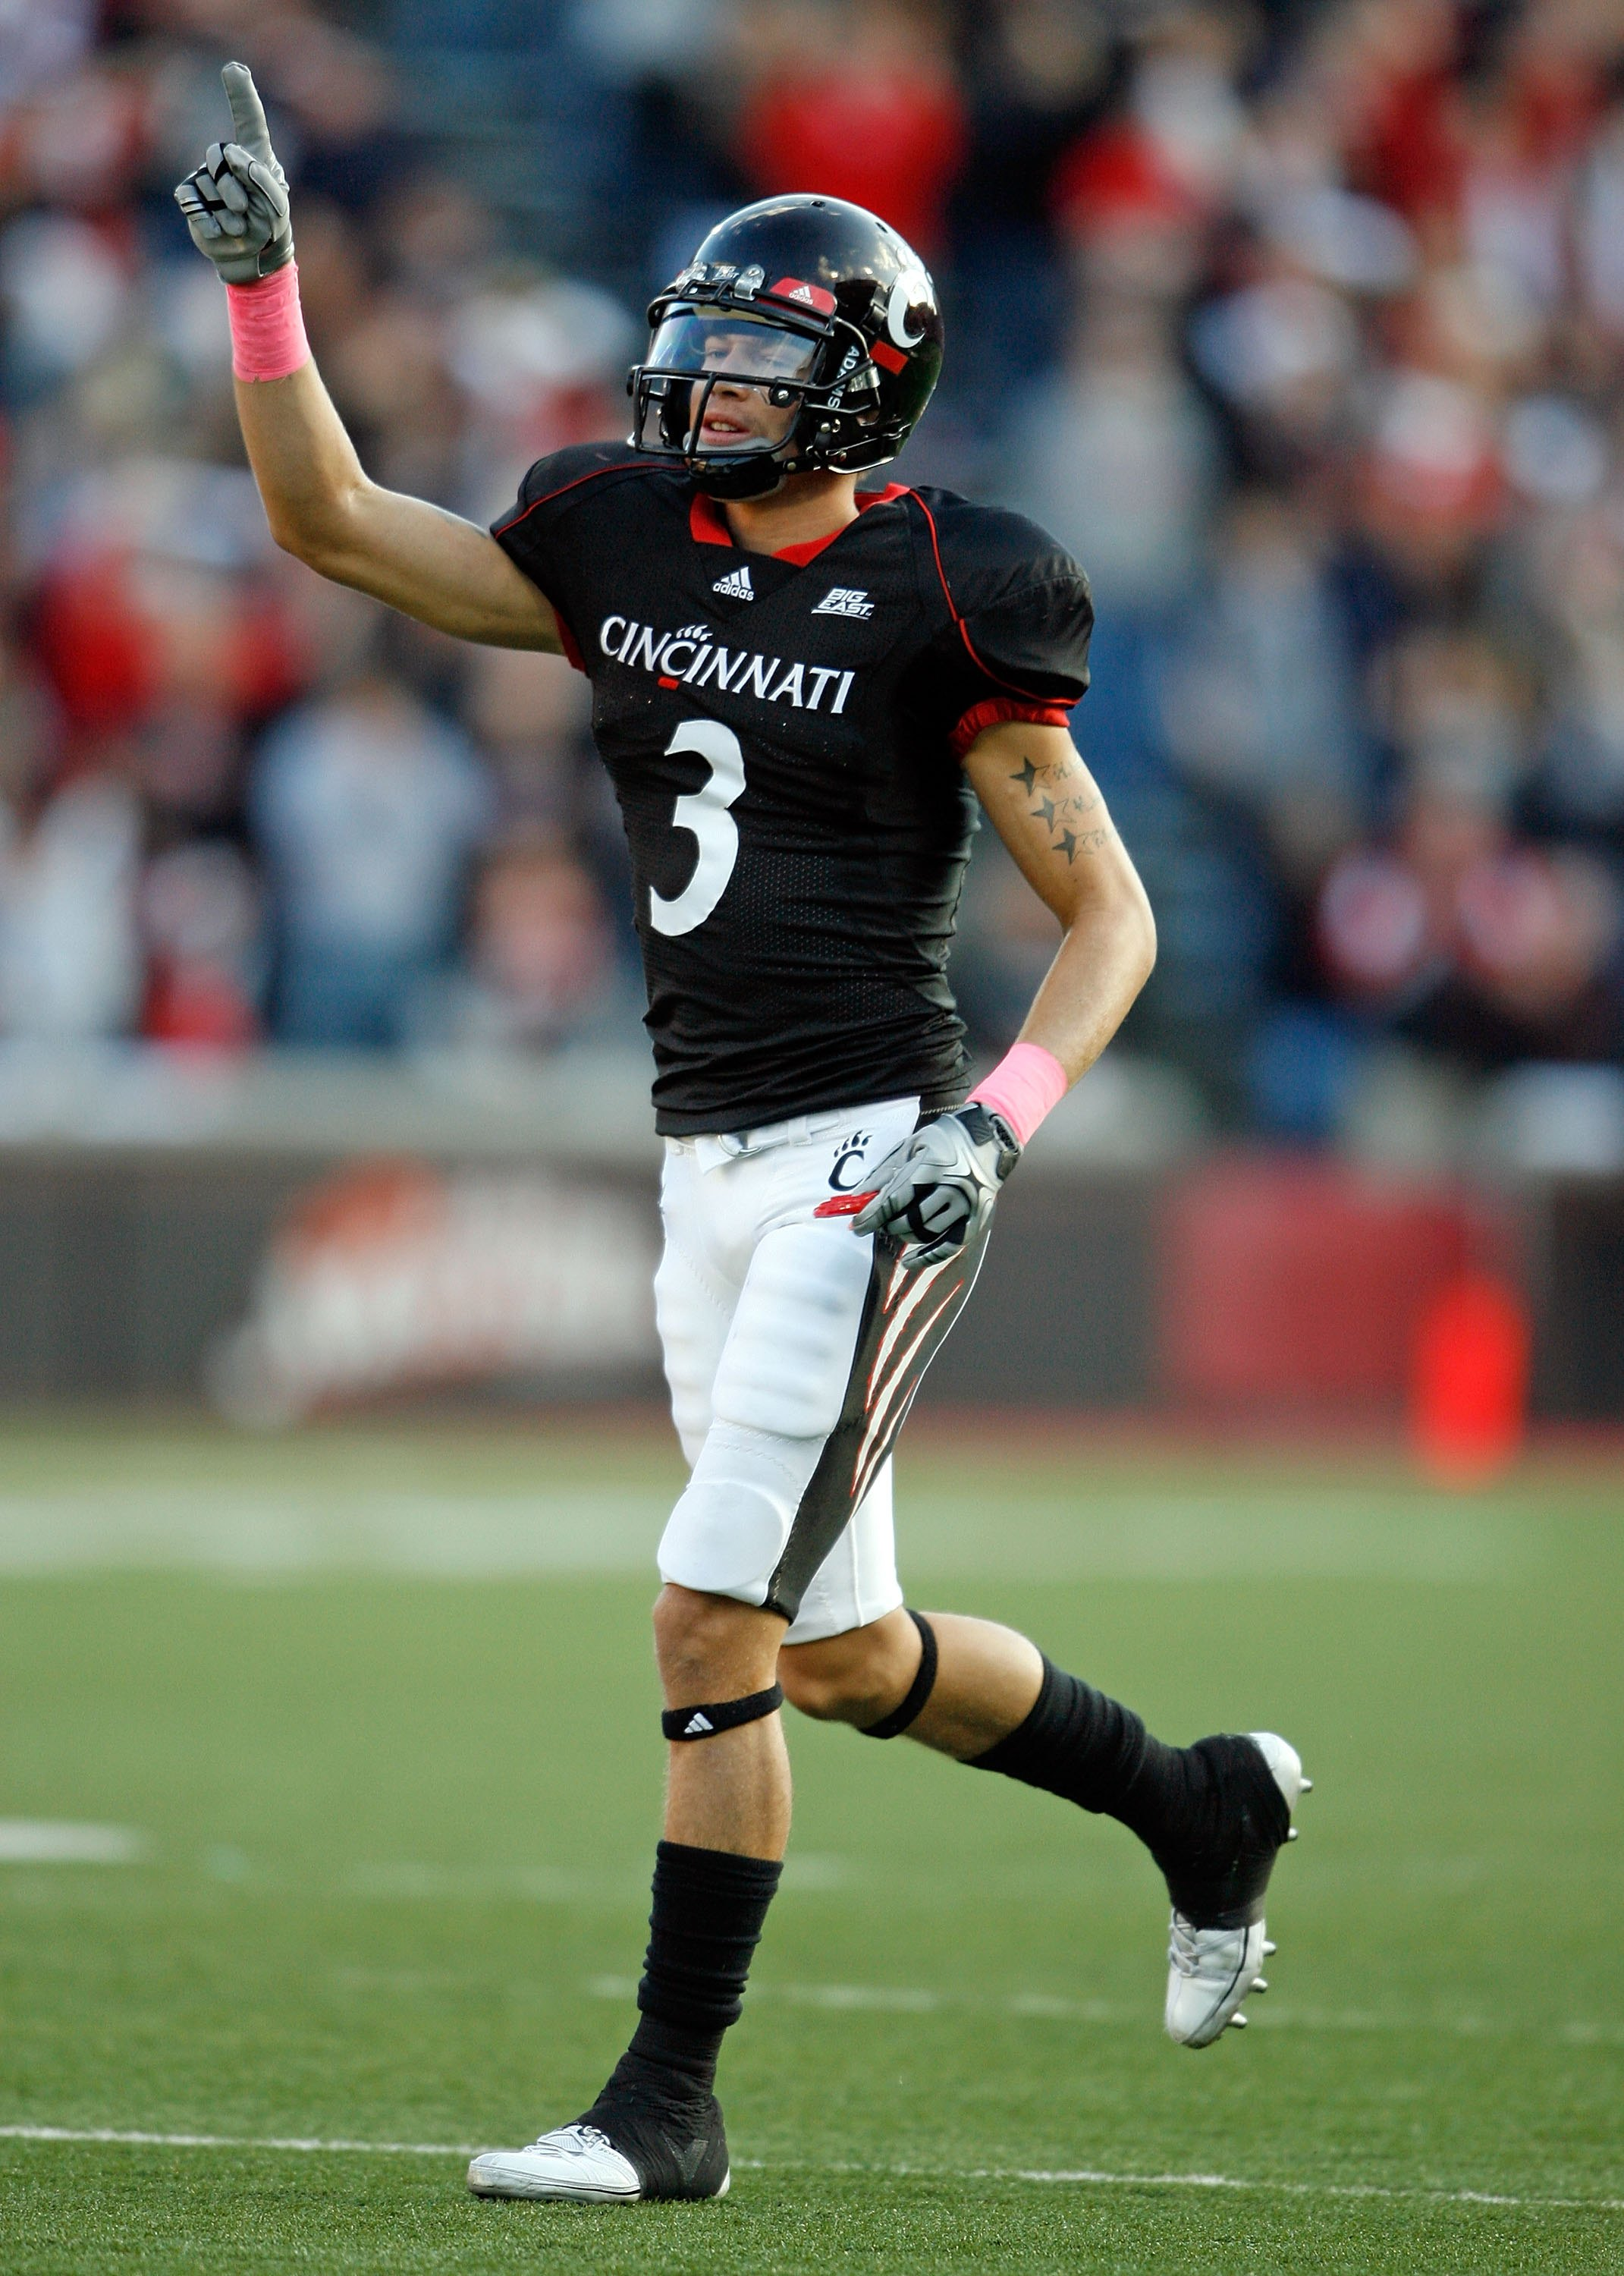 CINCINNATI - OCTOBER 24:  DJ Woods # 3 of the Cincinnati Bearcats celebrates a touchdown during the Big East Conference game against the Louisville Cardinals at Nippert Stadium on October 24, 2009 in Cincinnati, Ohio.  (Photo by Andy Lyons/Getty Images)